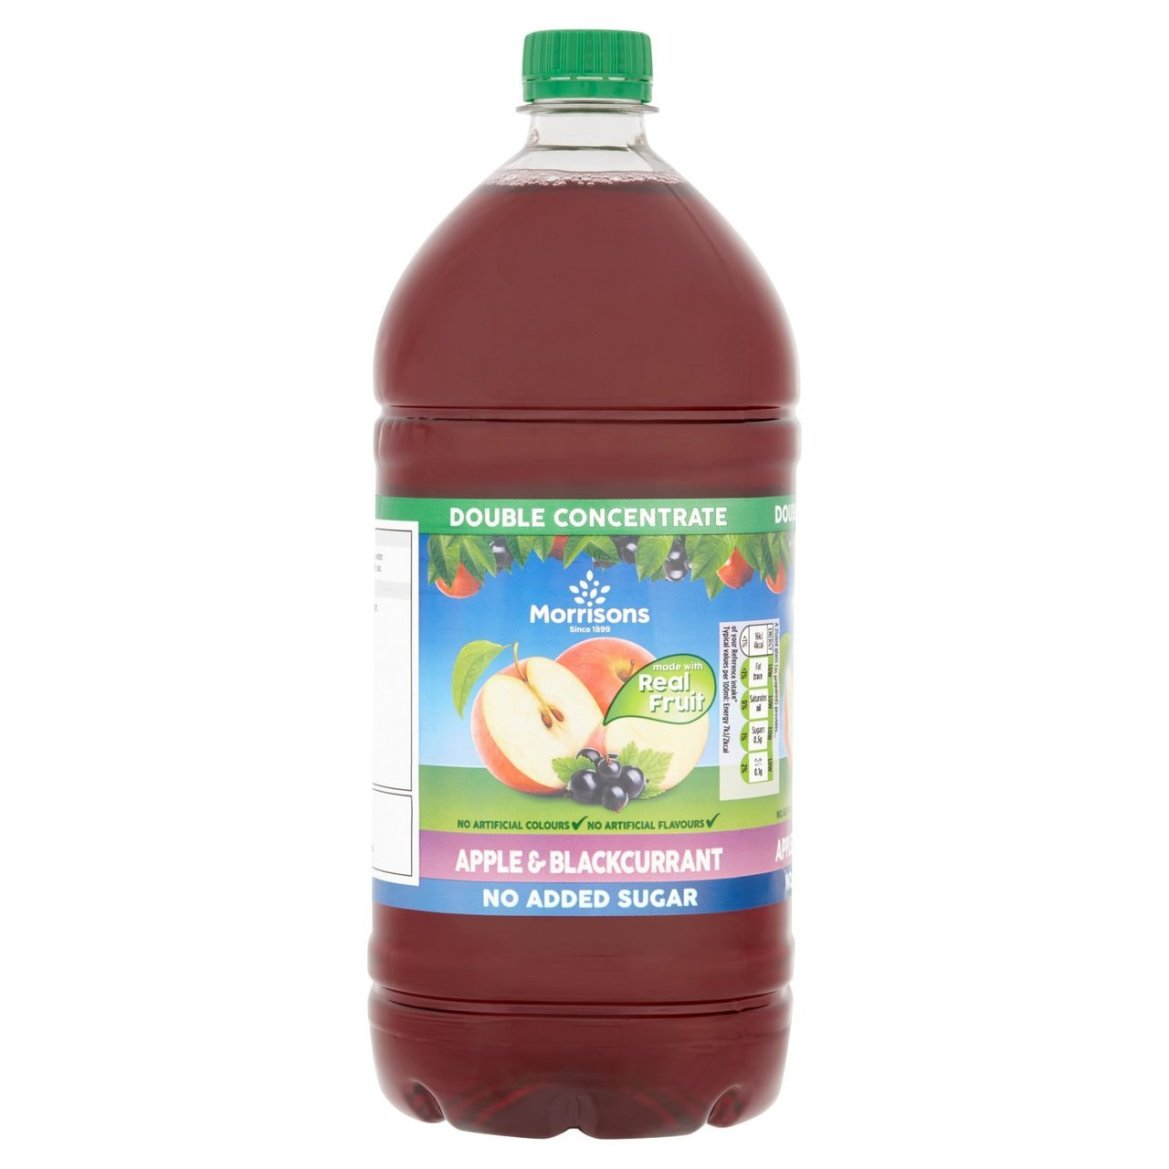 A bottle of Morrisons No Added Sugar Apple & Blackcurrant squash is currently on offer for 89p